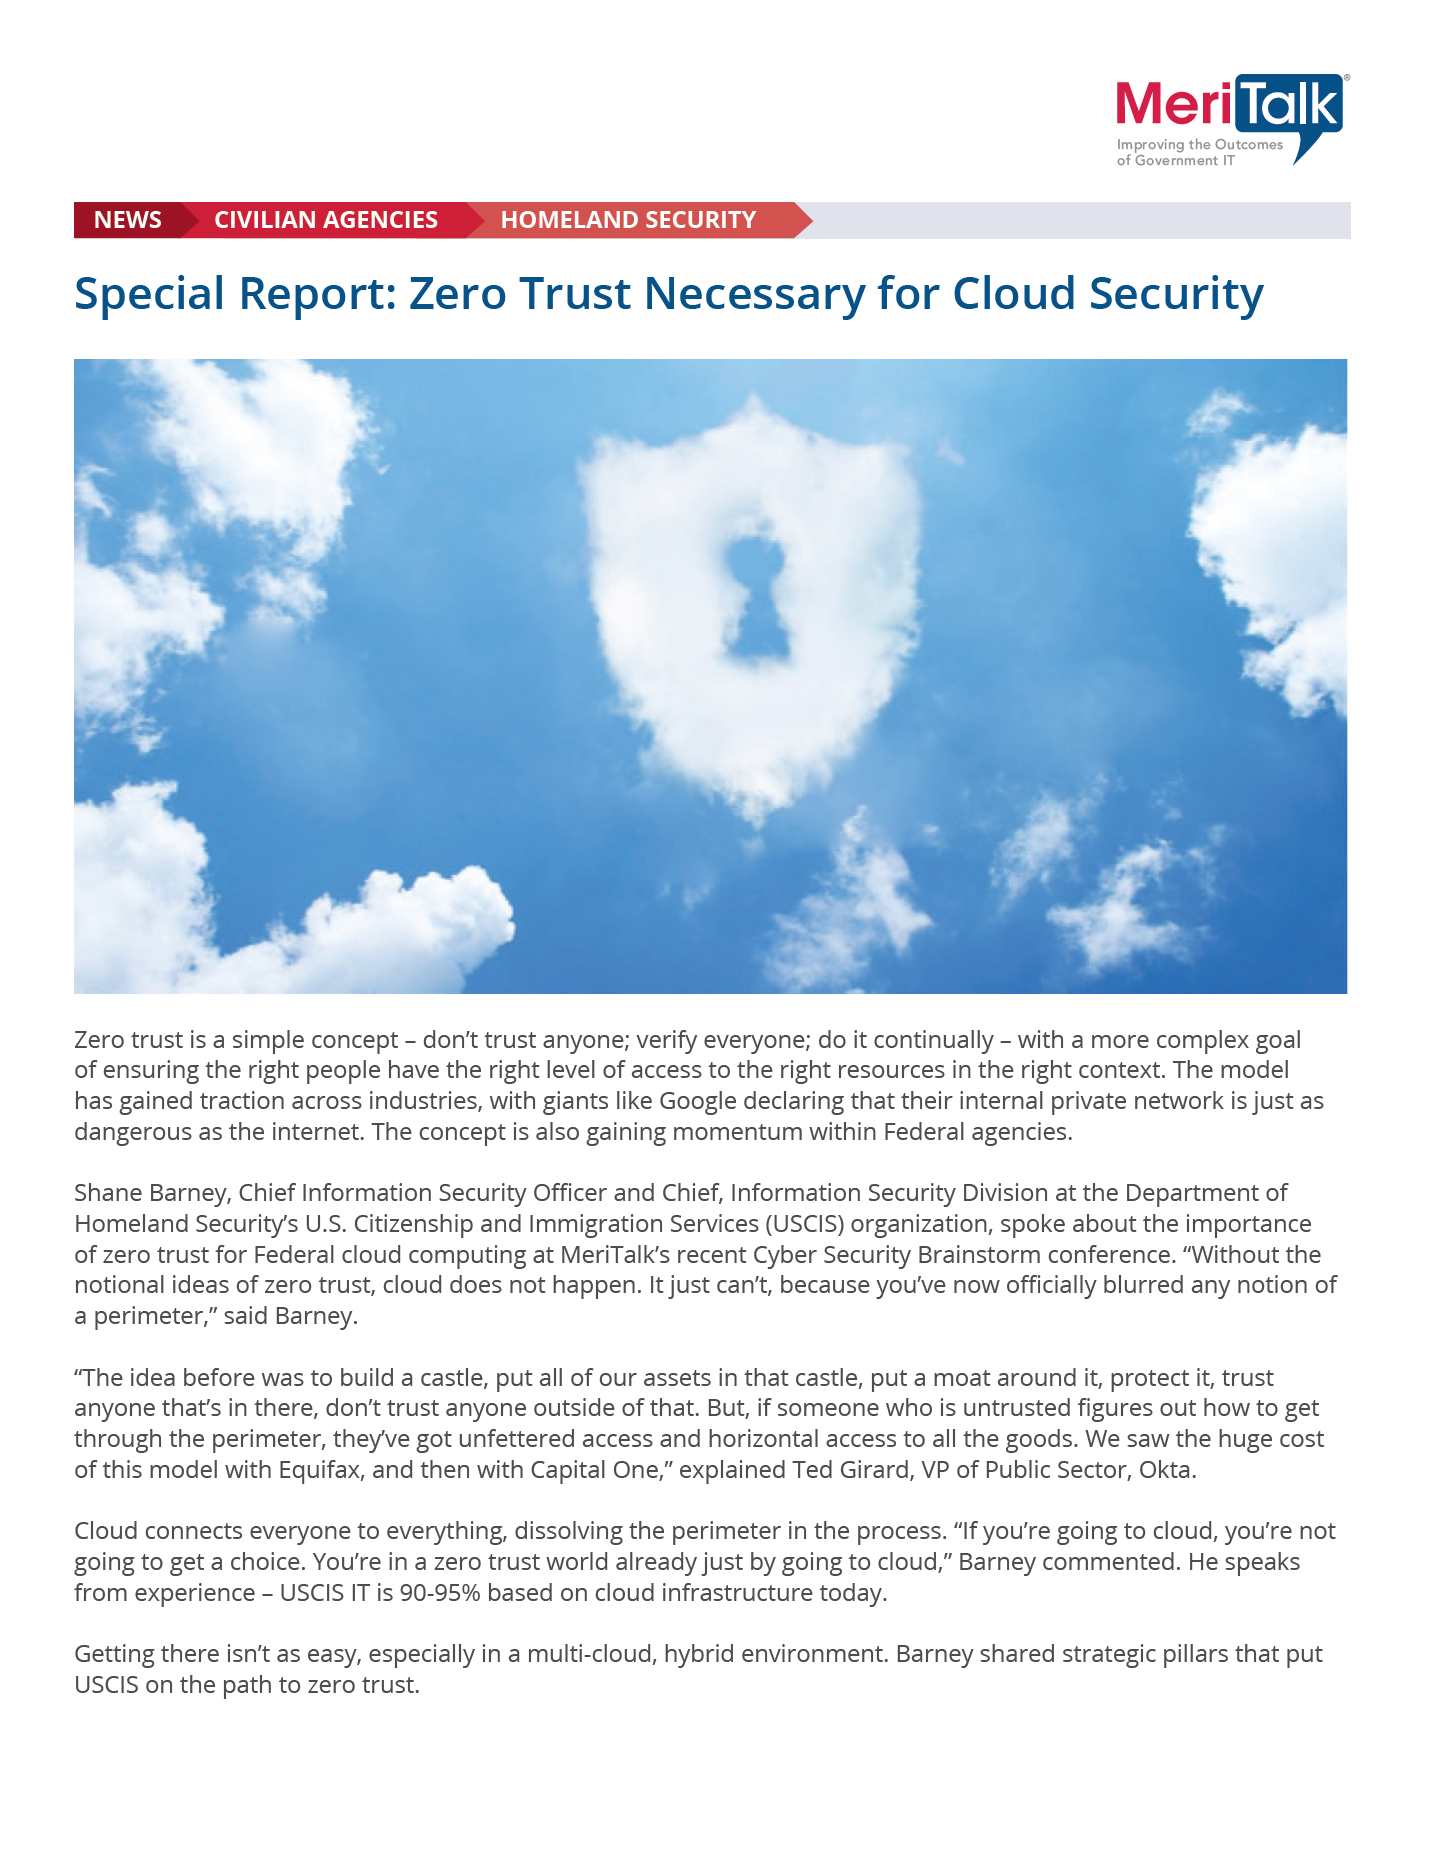 Special Report: Zero Trust Necessary for Cloud Security.